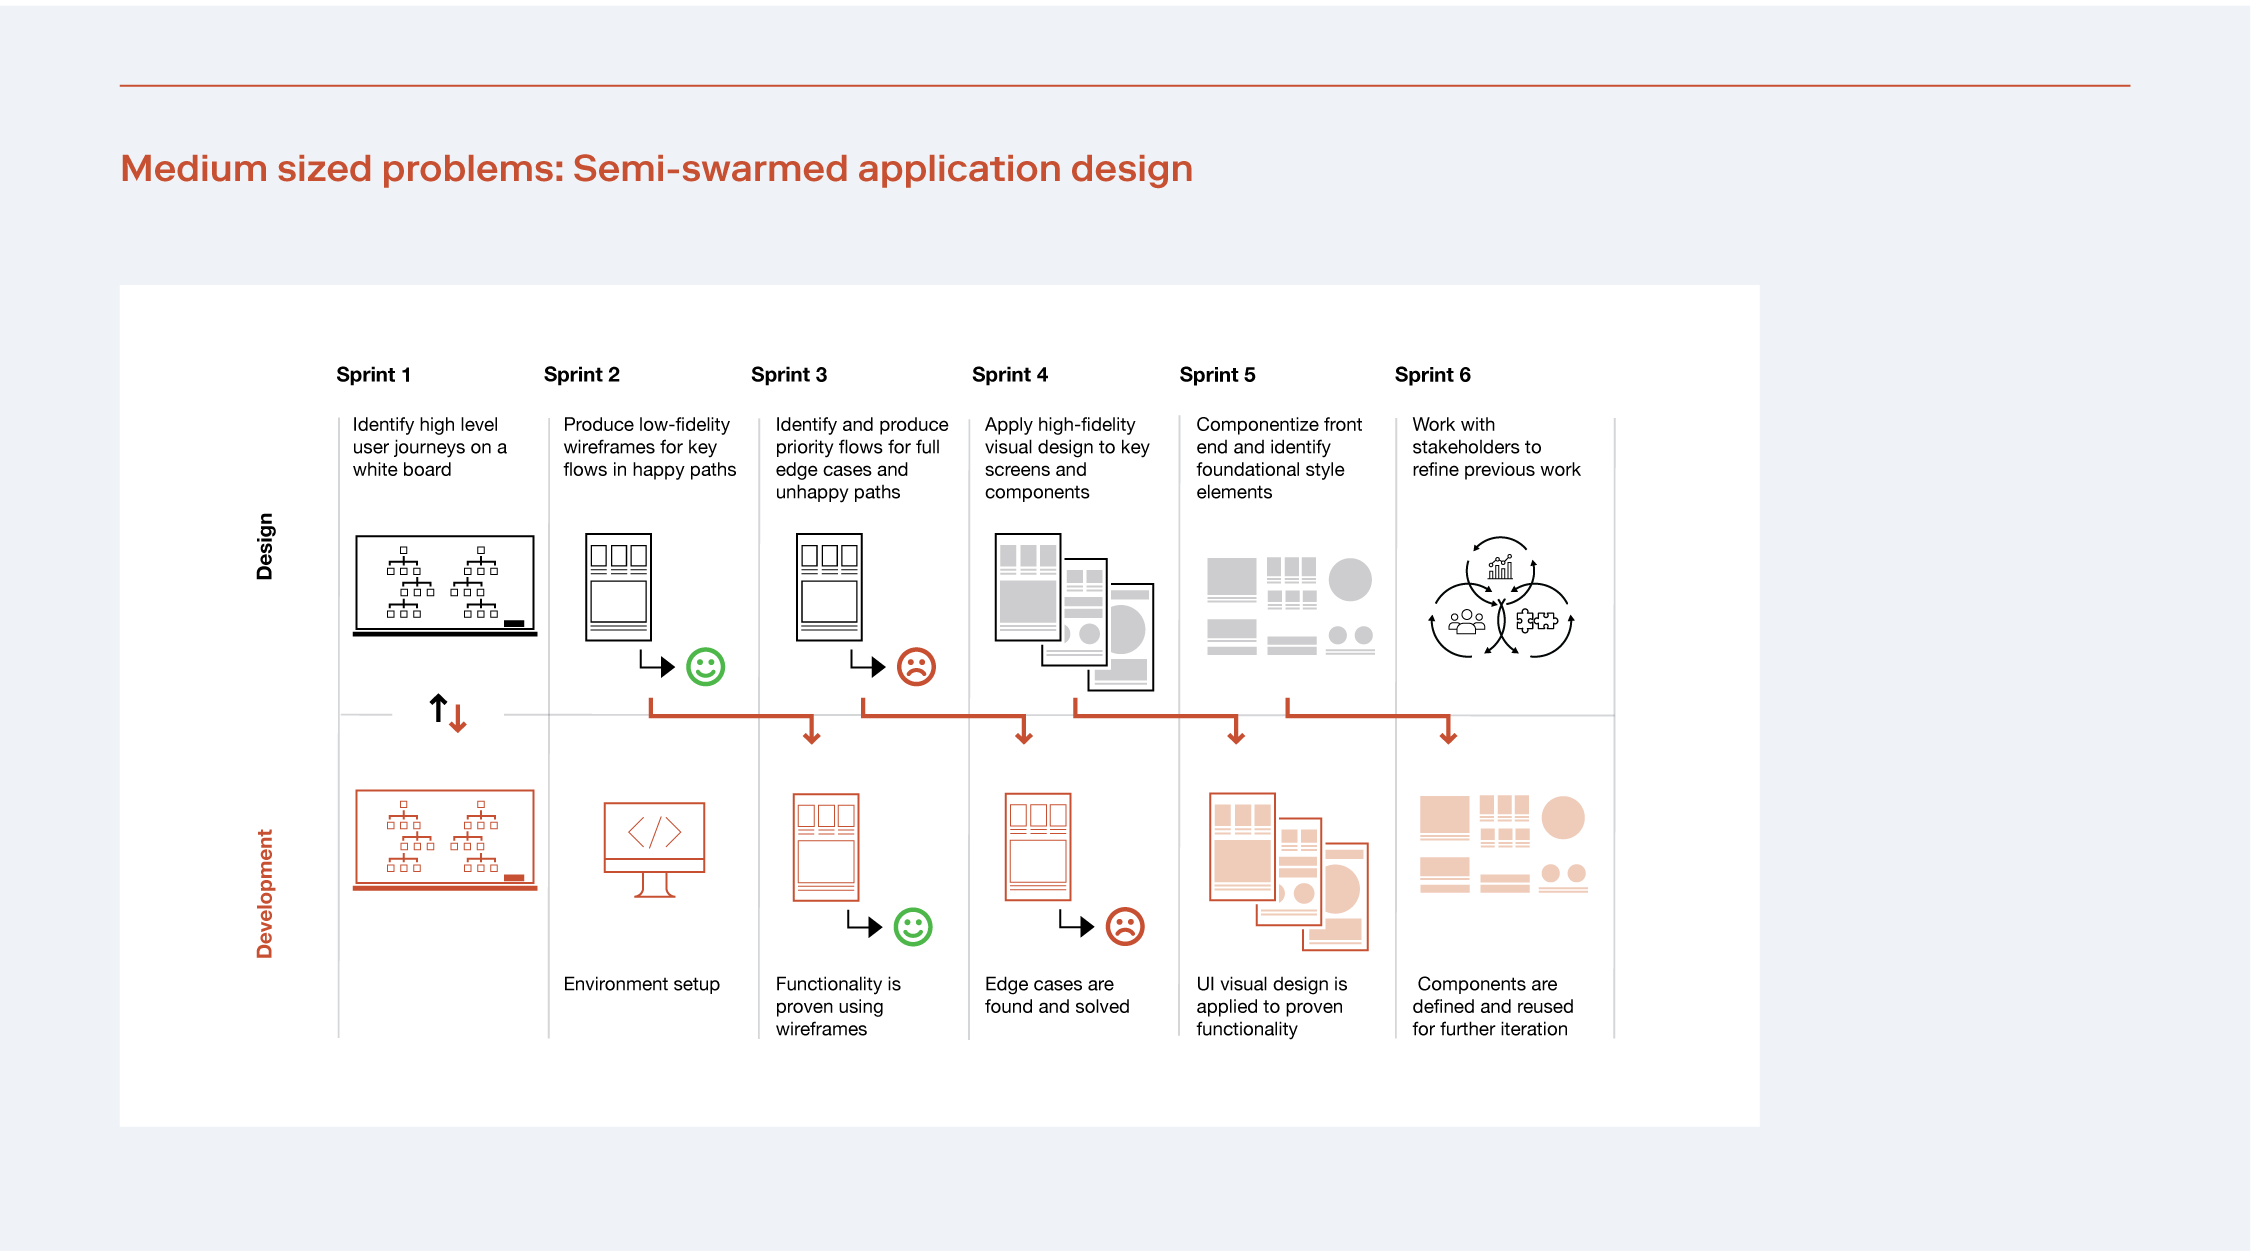 Workflow of creating an application in the semi-swarm approach